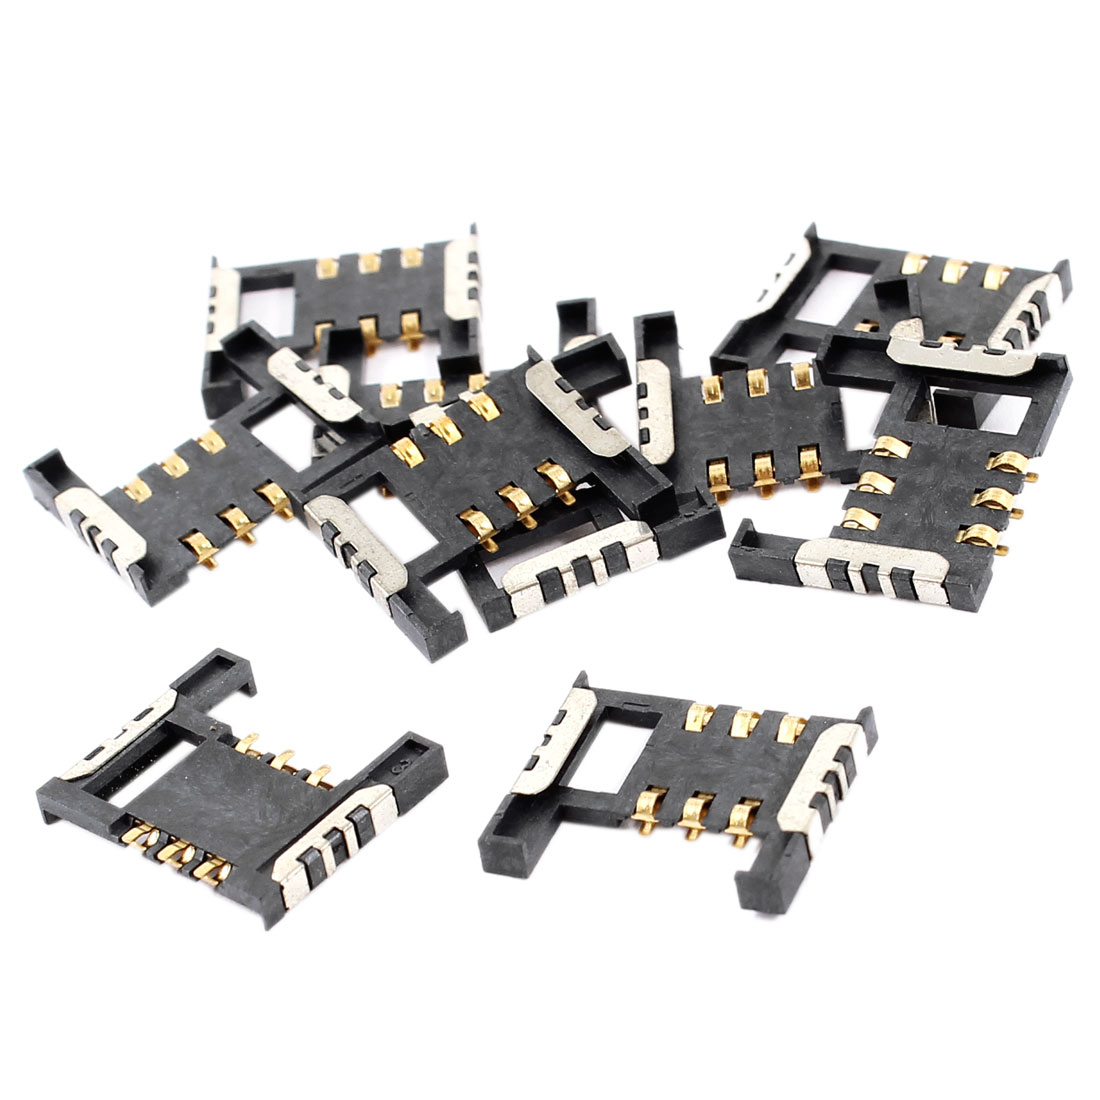 10 Pcs 6-Pin PCB Mounting SIM Card Socket Holder for Mobile Phone